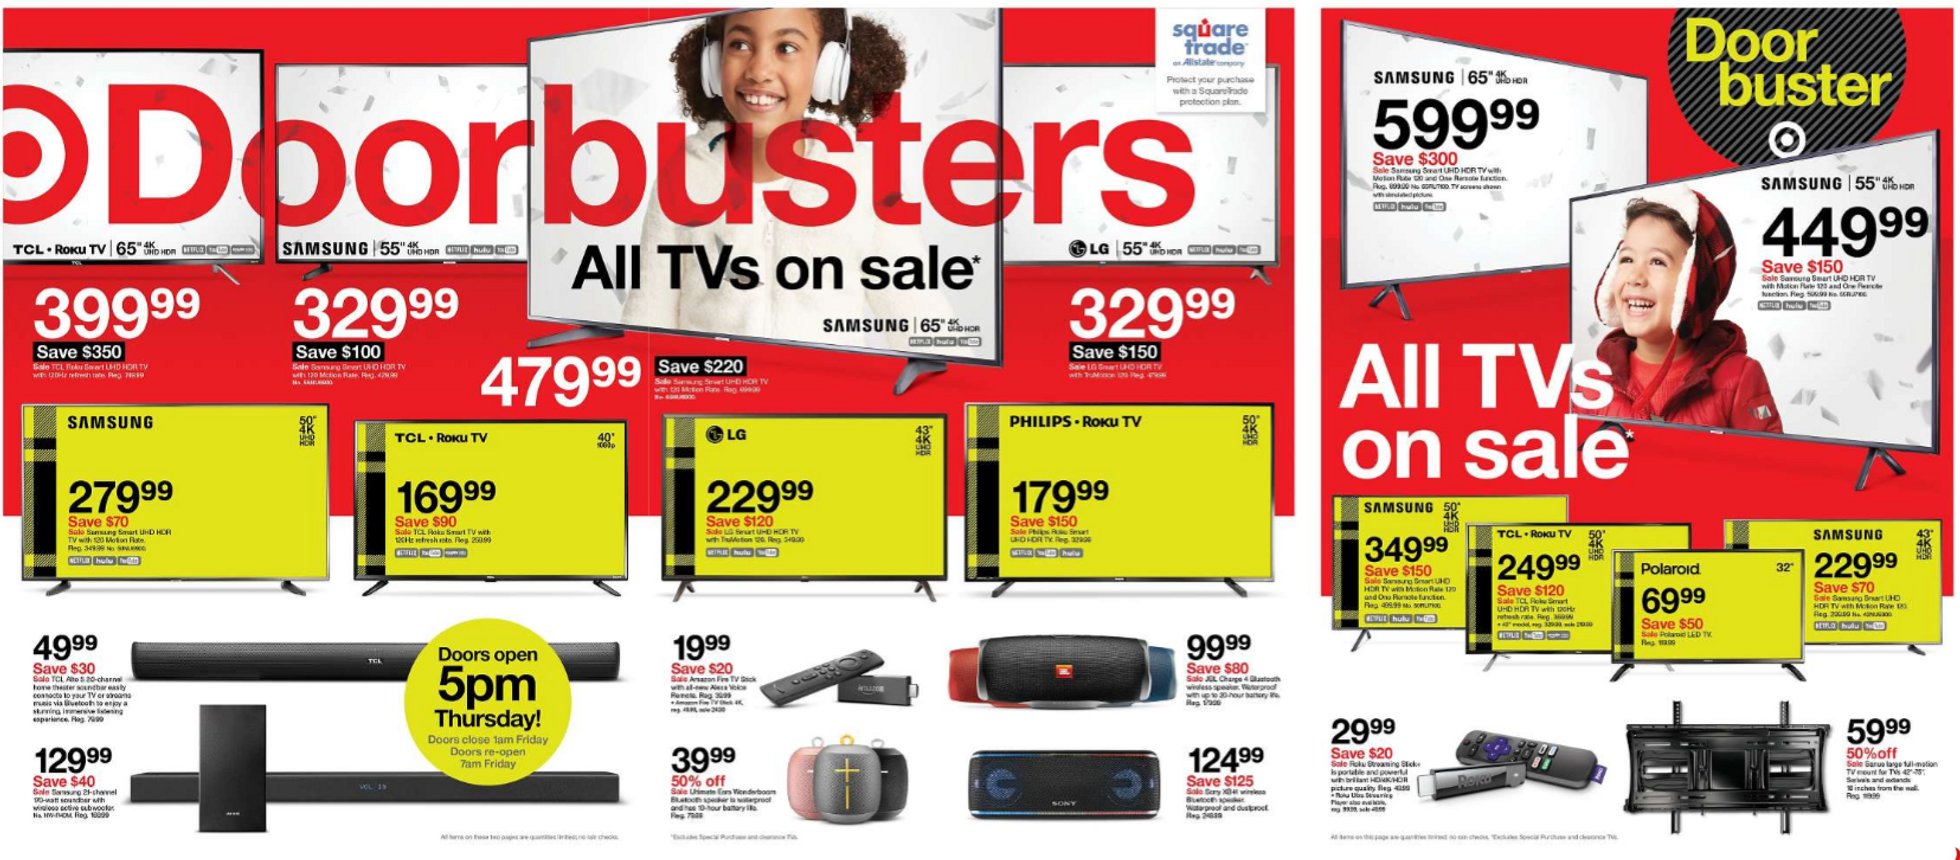 Target - promo starting from 11/28/19 to 11/30/19 - page 2. The promotion includes samsung, philips, tcl